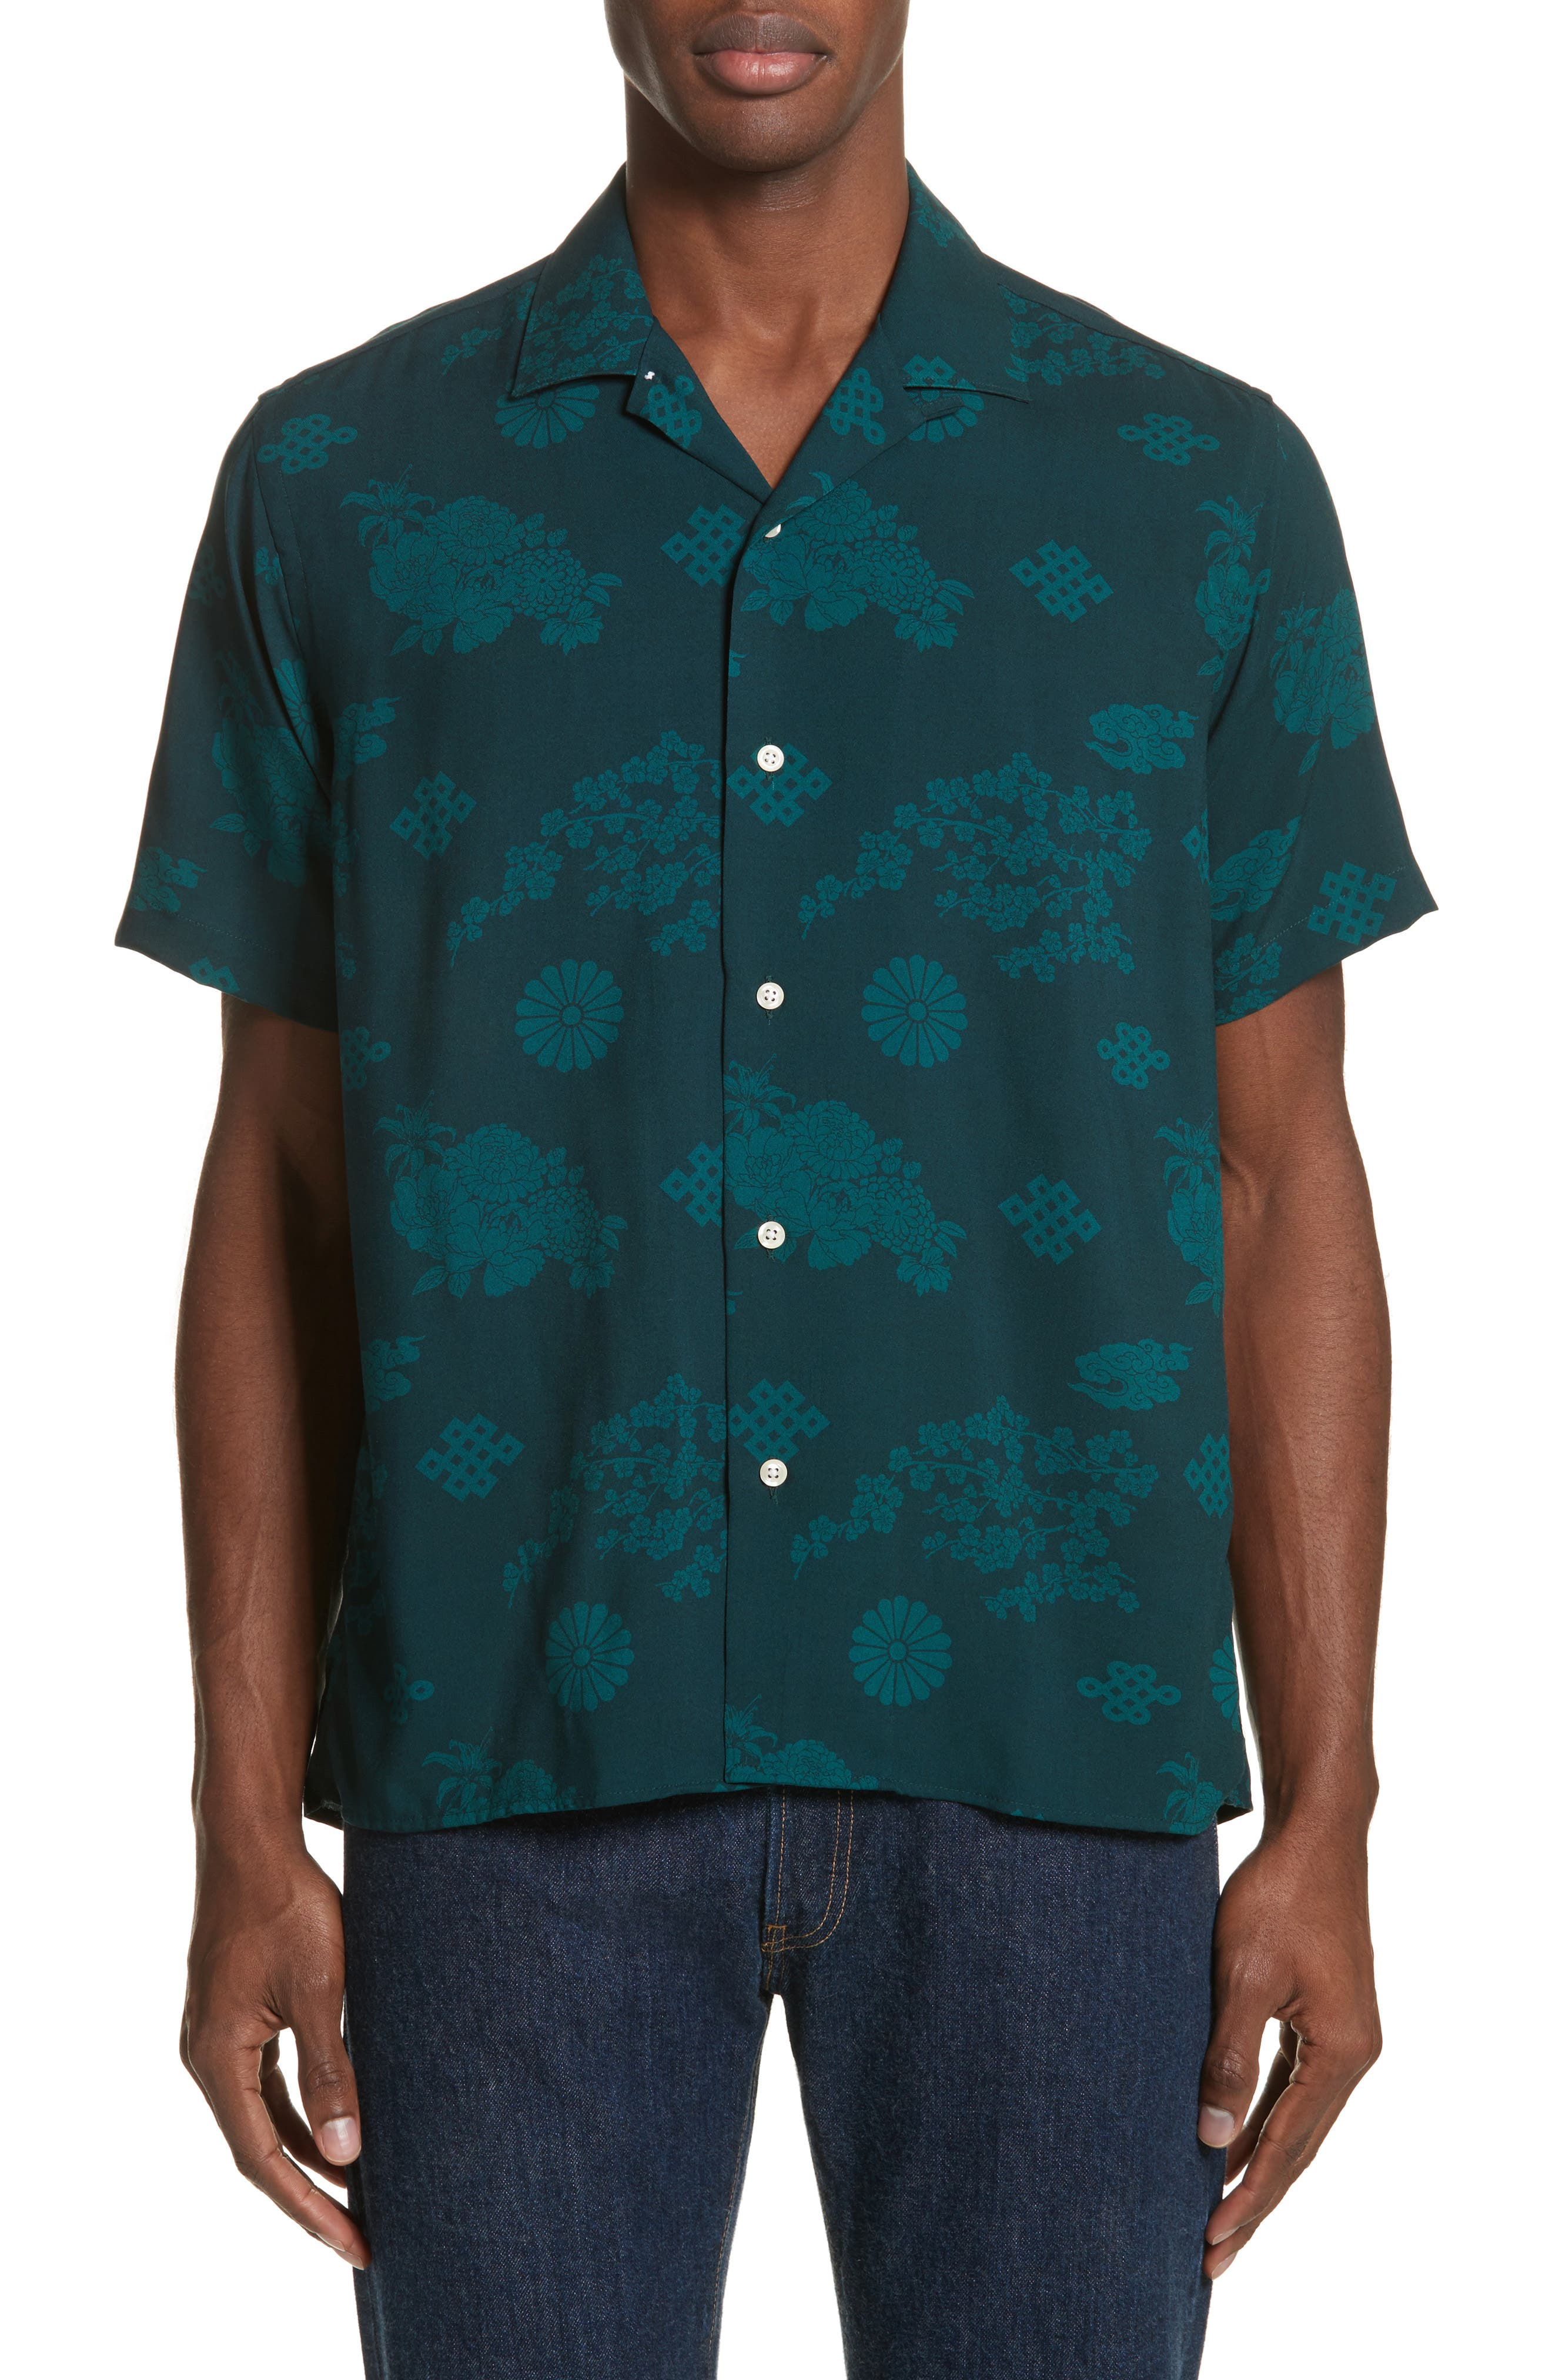 x The North Face Men's Floral Print Camp Shirt,                             Alternate thumbnail 2, color,                             Green Ground